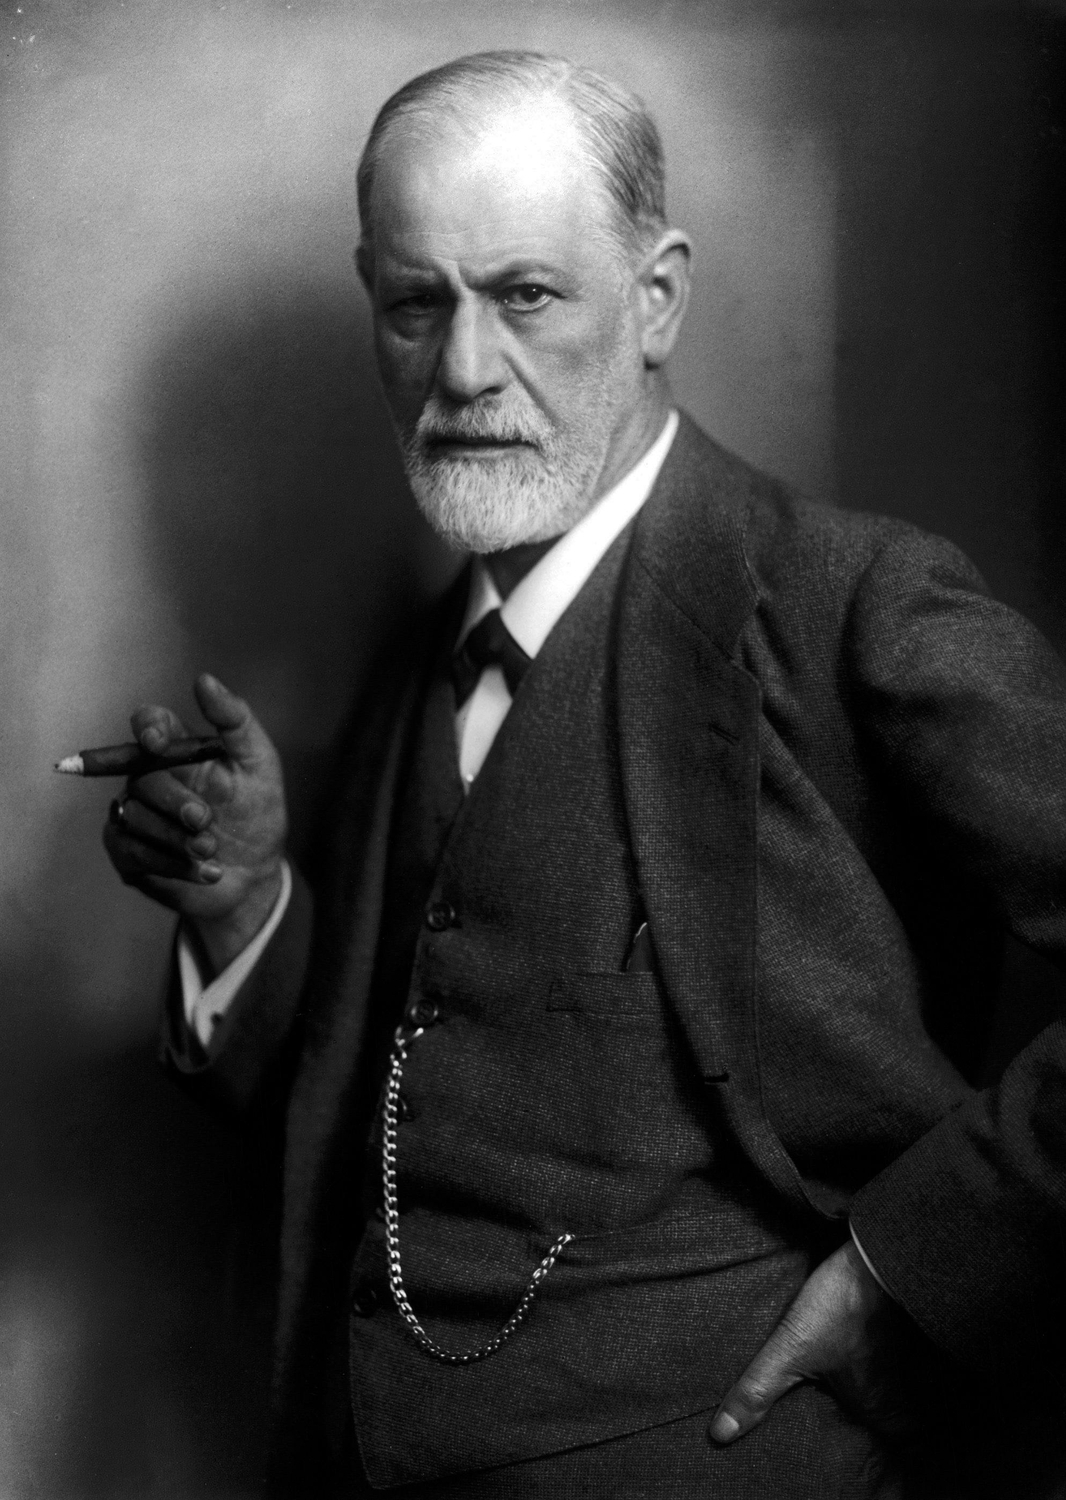 Father of psychoanalysis, social critic, and famed cocaine enthusiast Sigmund Freud.